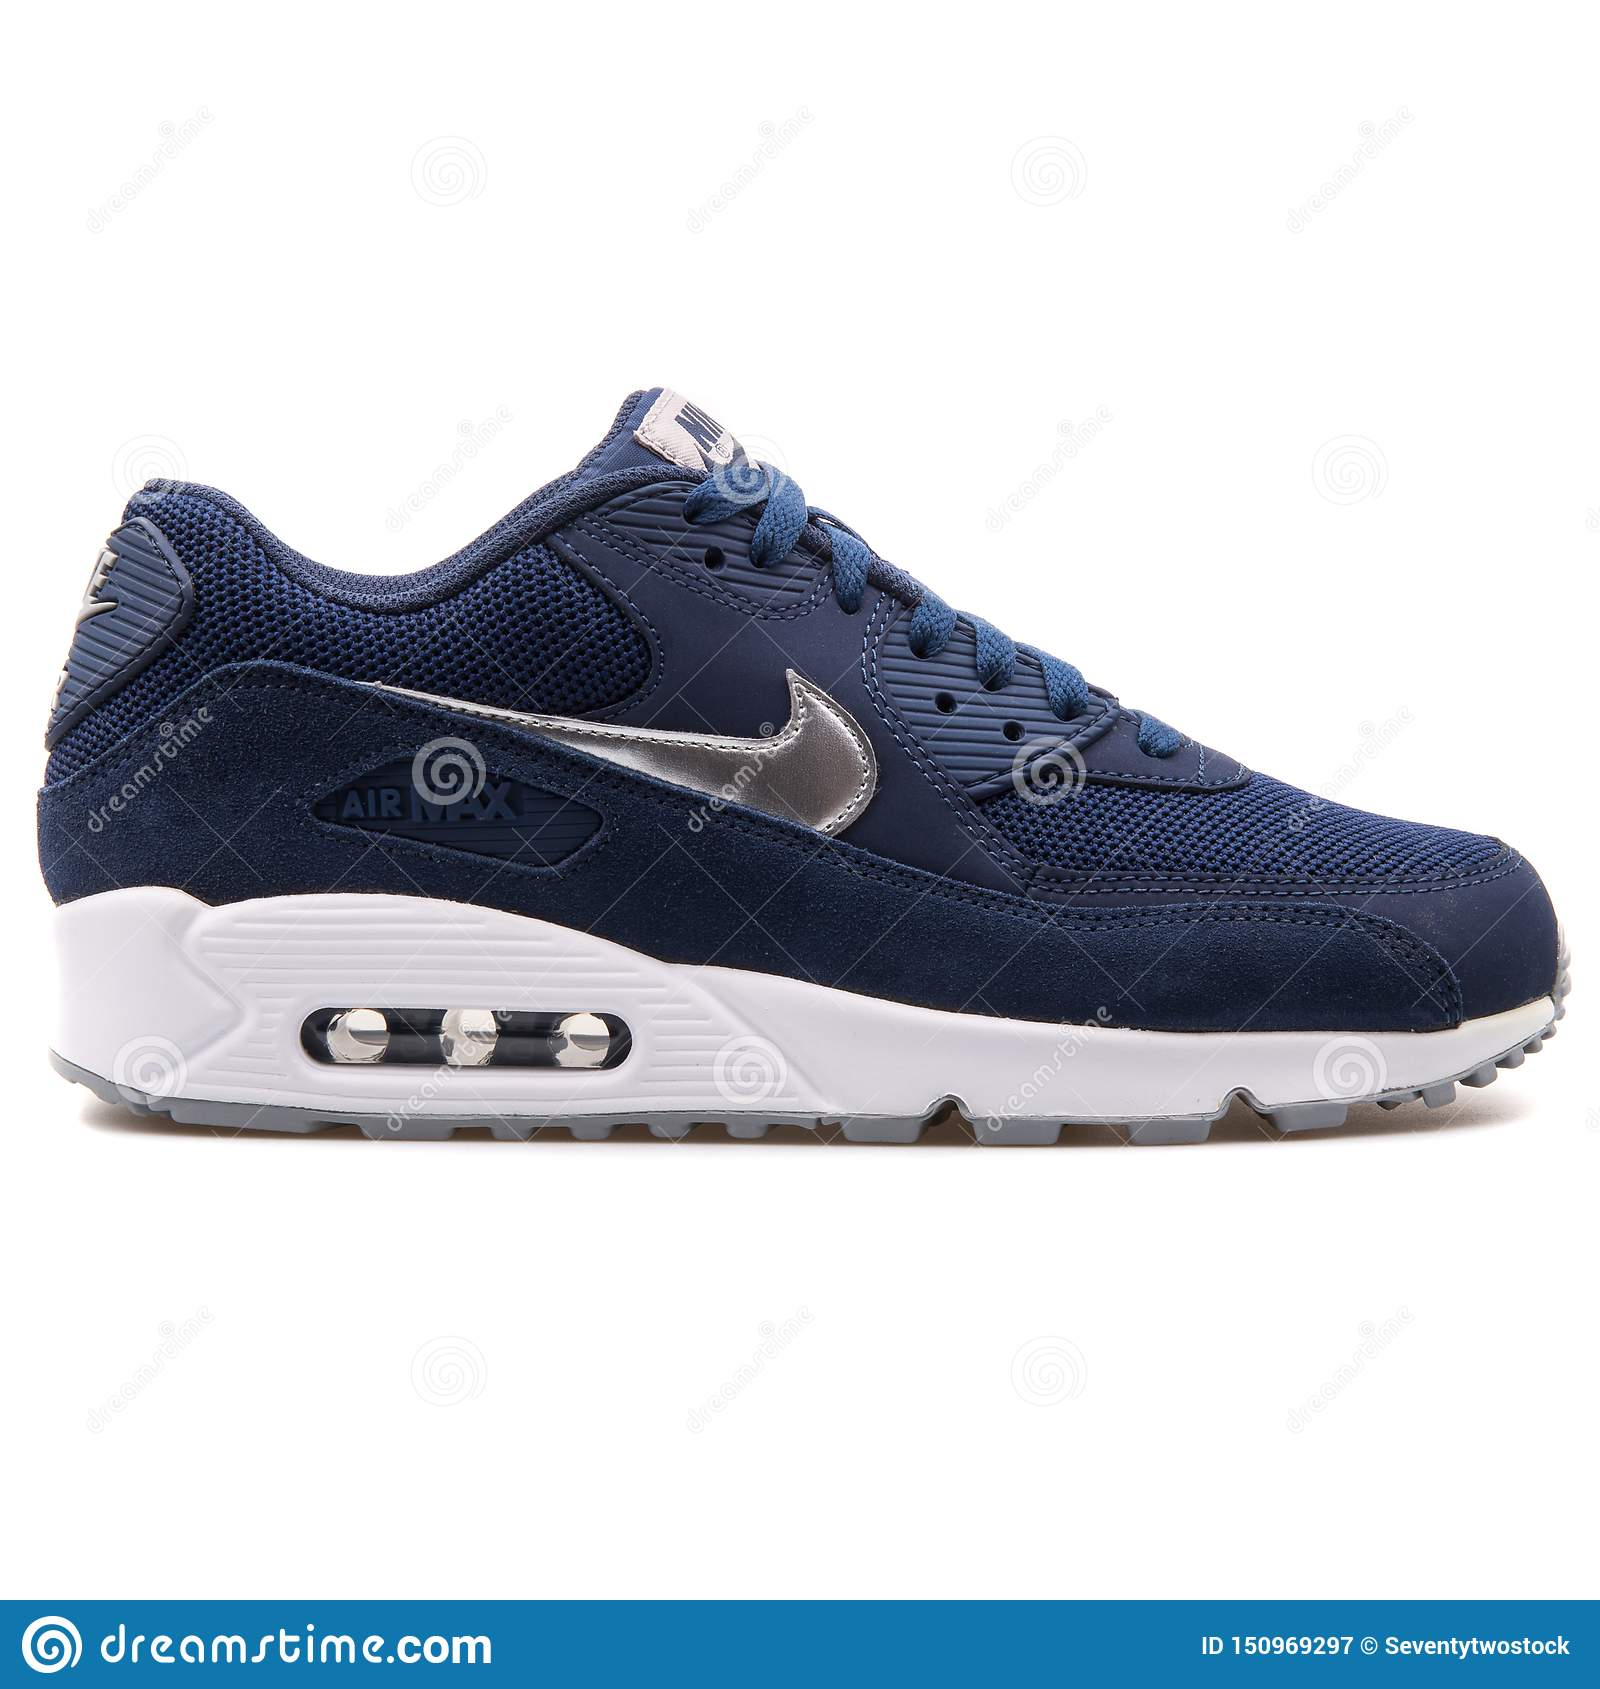 Camello montón demanda  Nike Air Max 90 Essential Navy Blue Sneaker Editorial Photography - Image  of leather, navy: 150969297